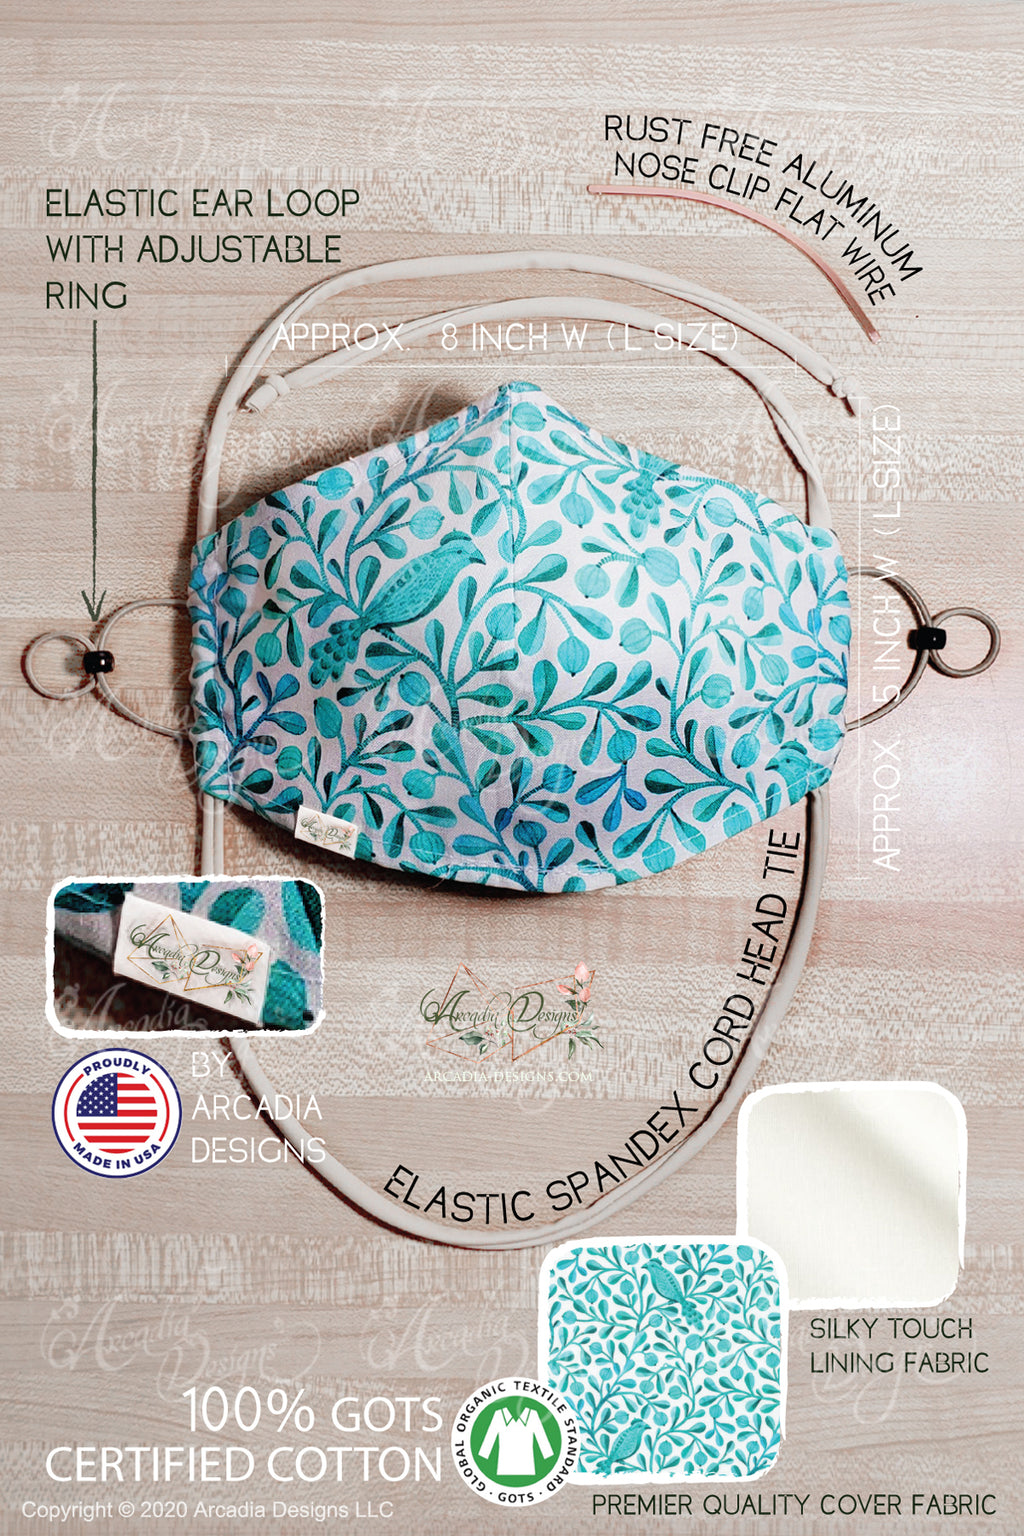 Tiffany bird GOTS certified Organic Cotton cloth face mask with nose wire head tie by Arcadia Designs LLC handmade  made in USA